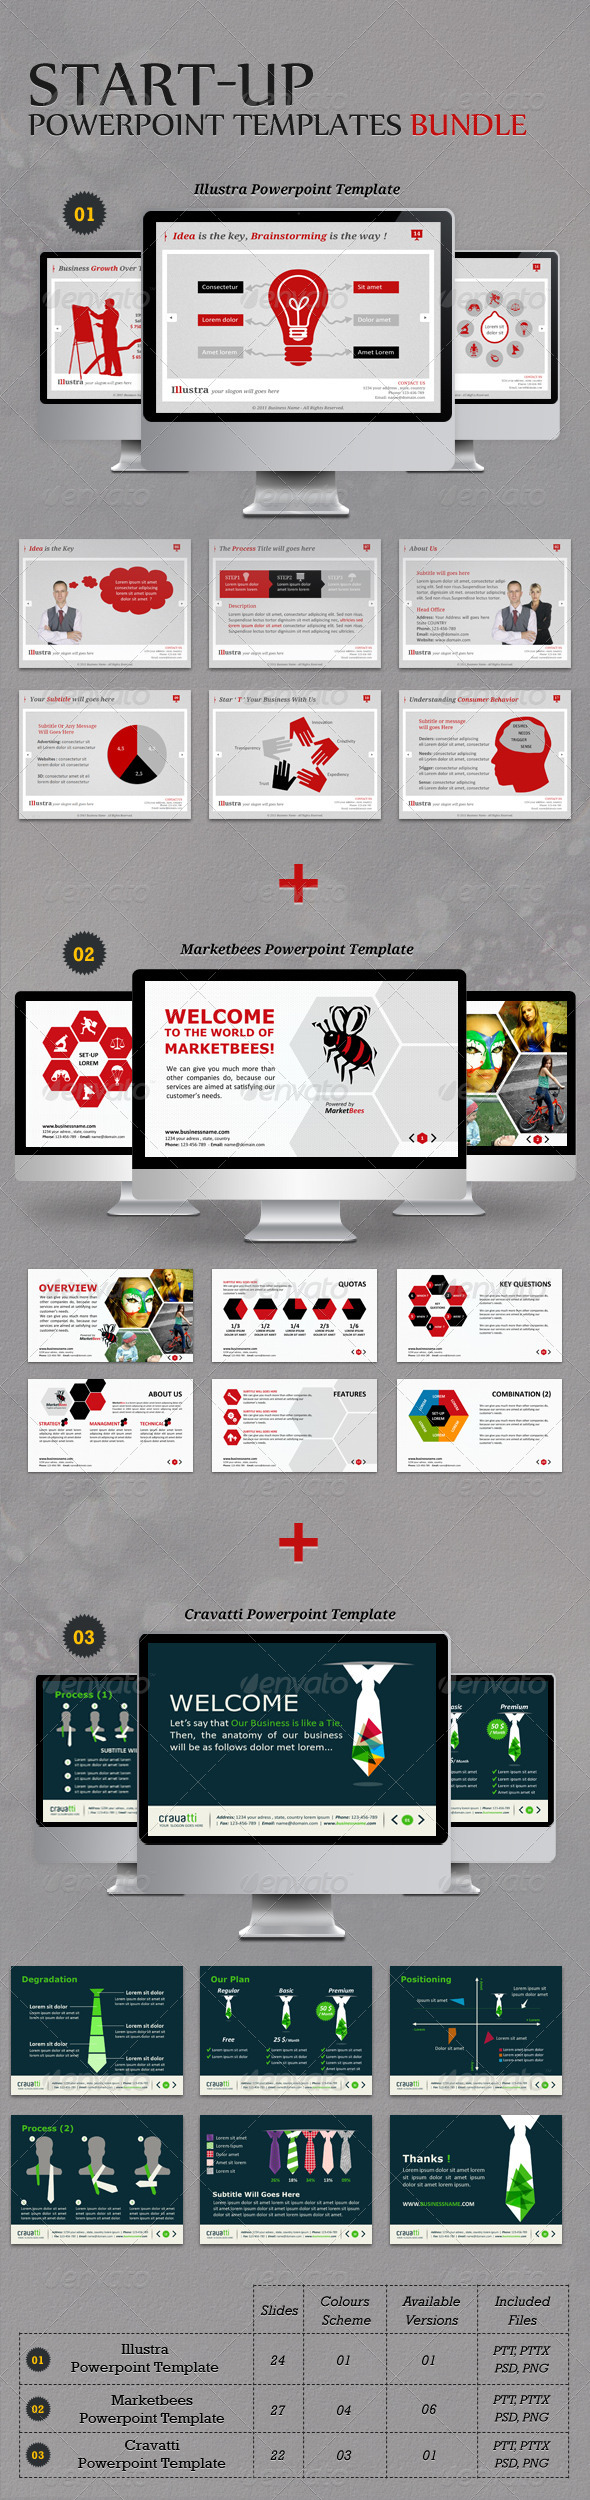 GraphicRiver Start-up Powerpoint Templates Bundle 6189643